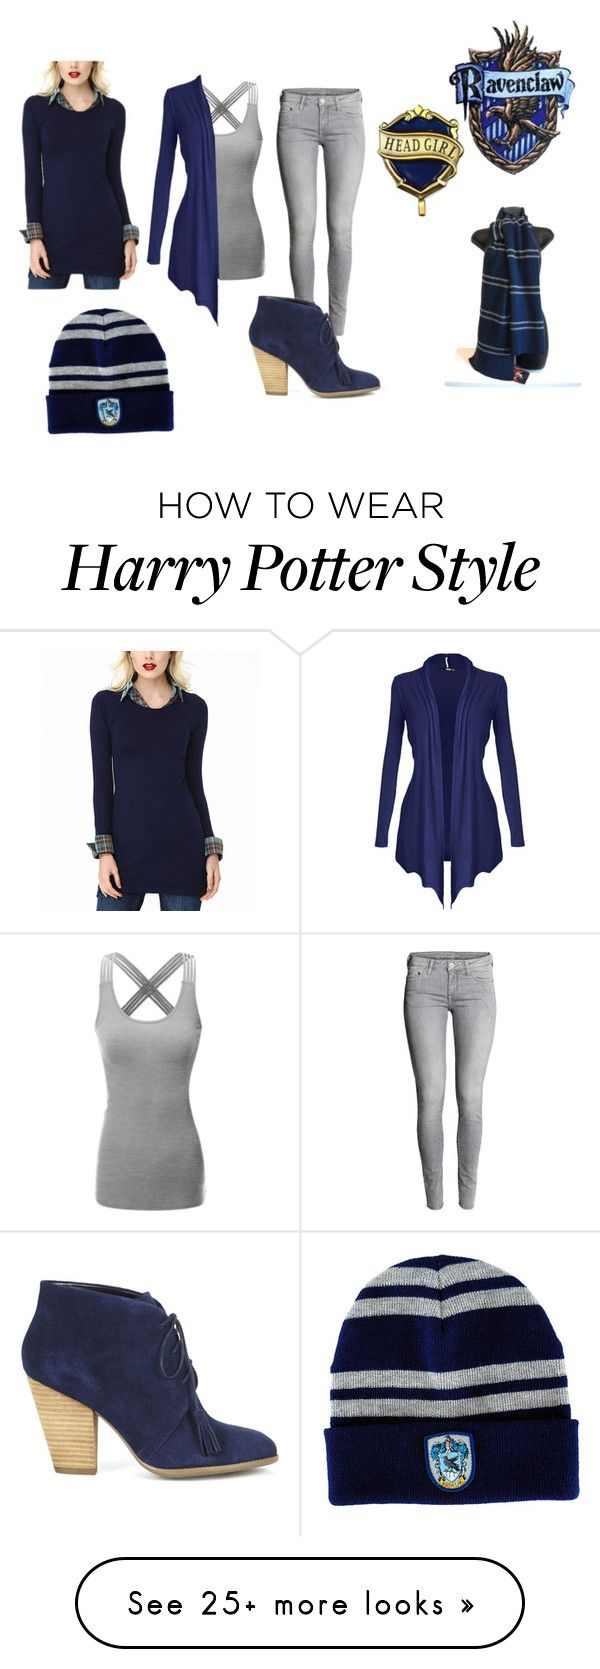 """""""Ravenclaw: Hogsmeade"""" by dominique-waller on Polyvore featuring Doublju and Sole Society"""